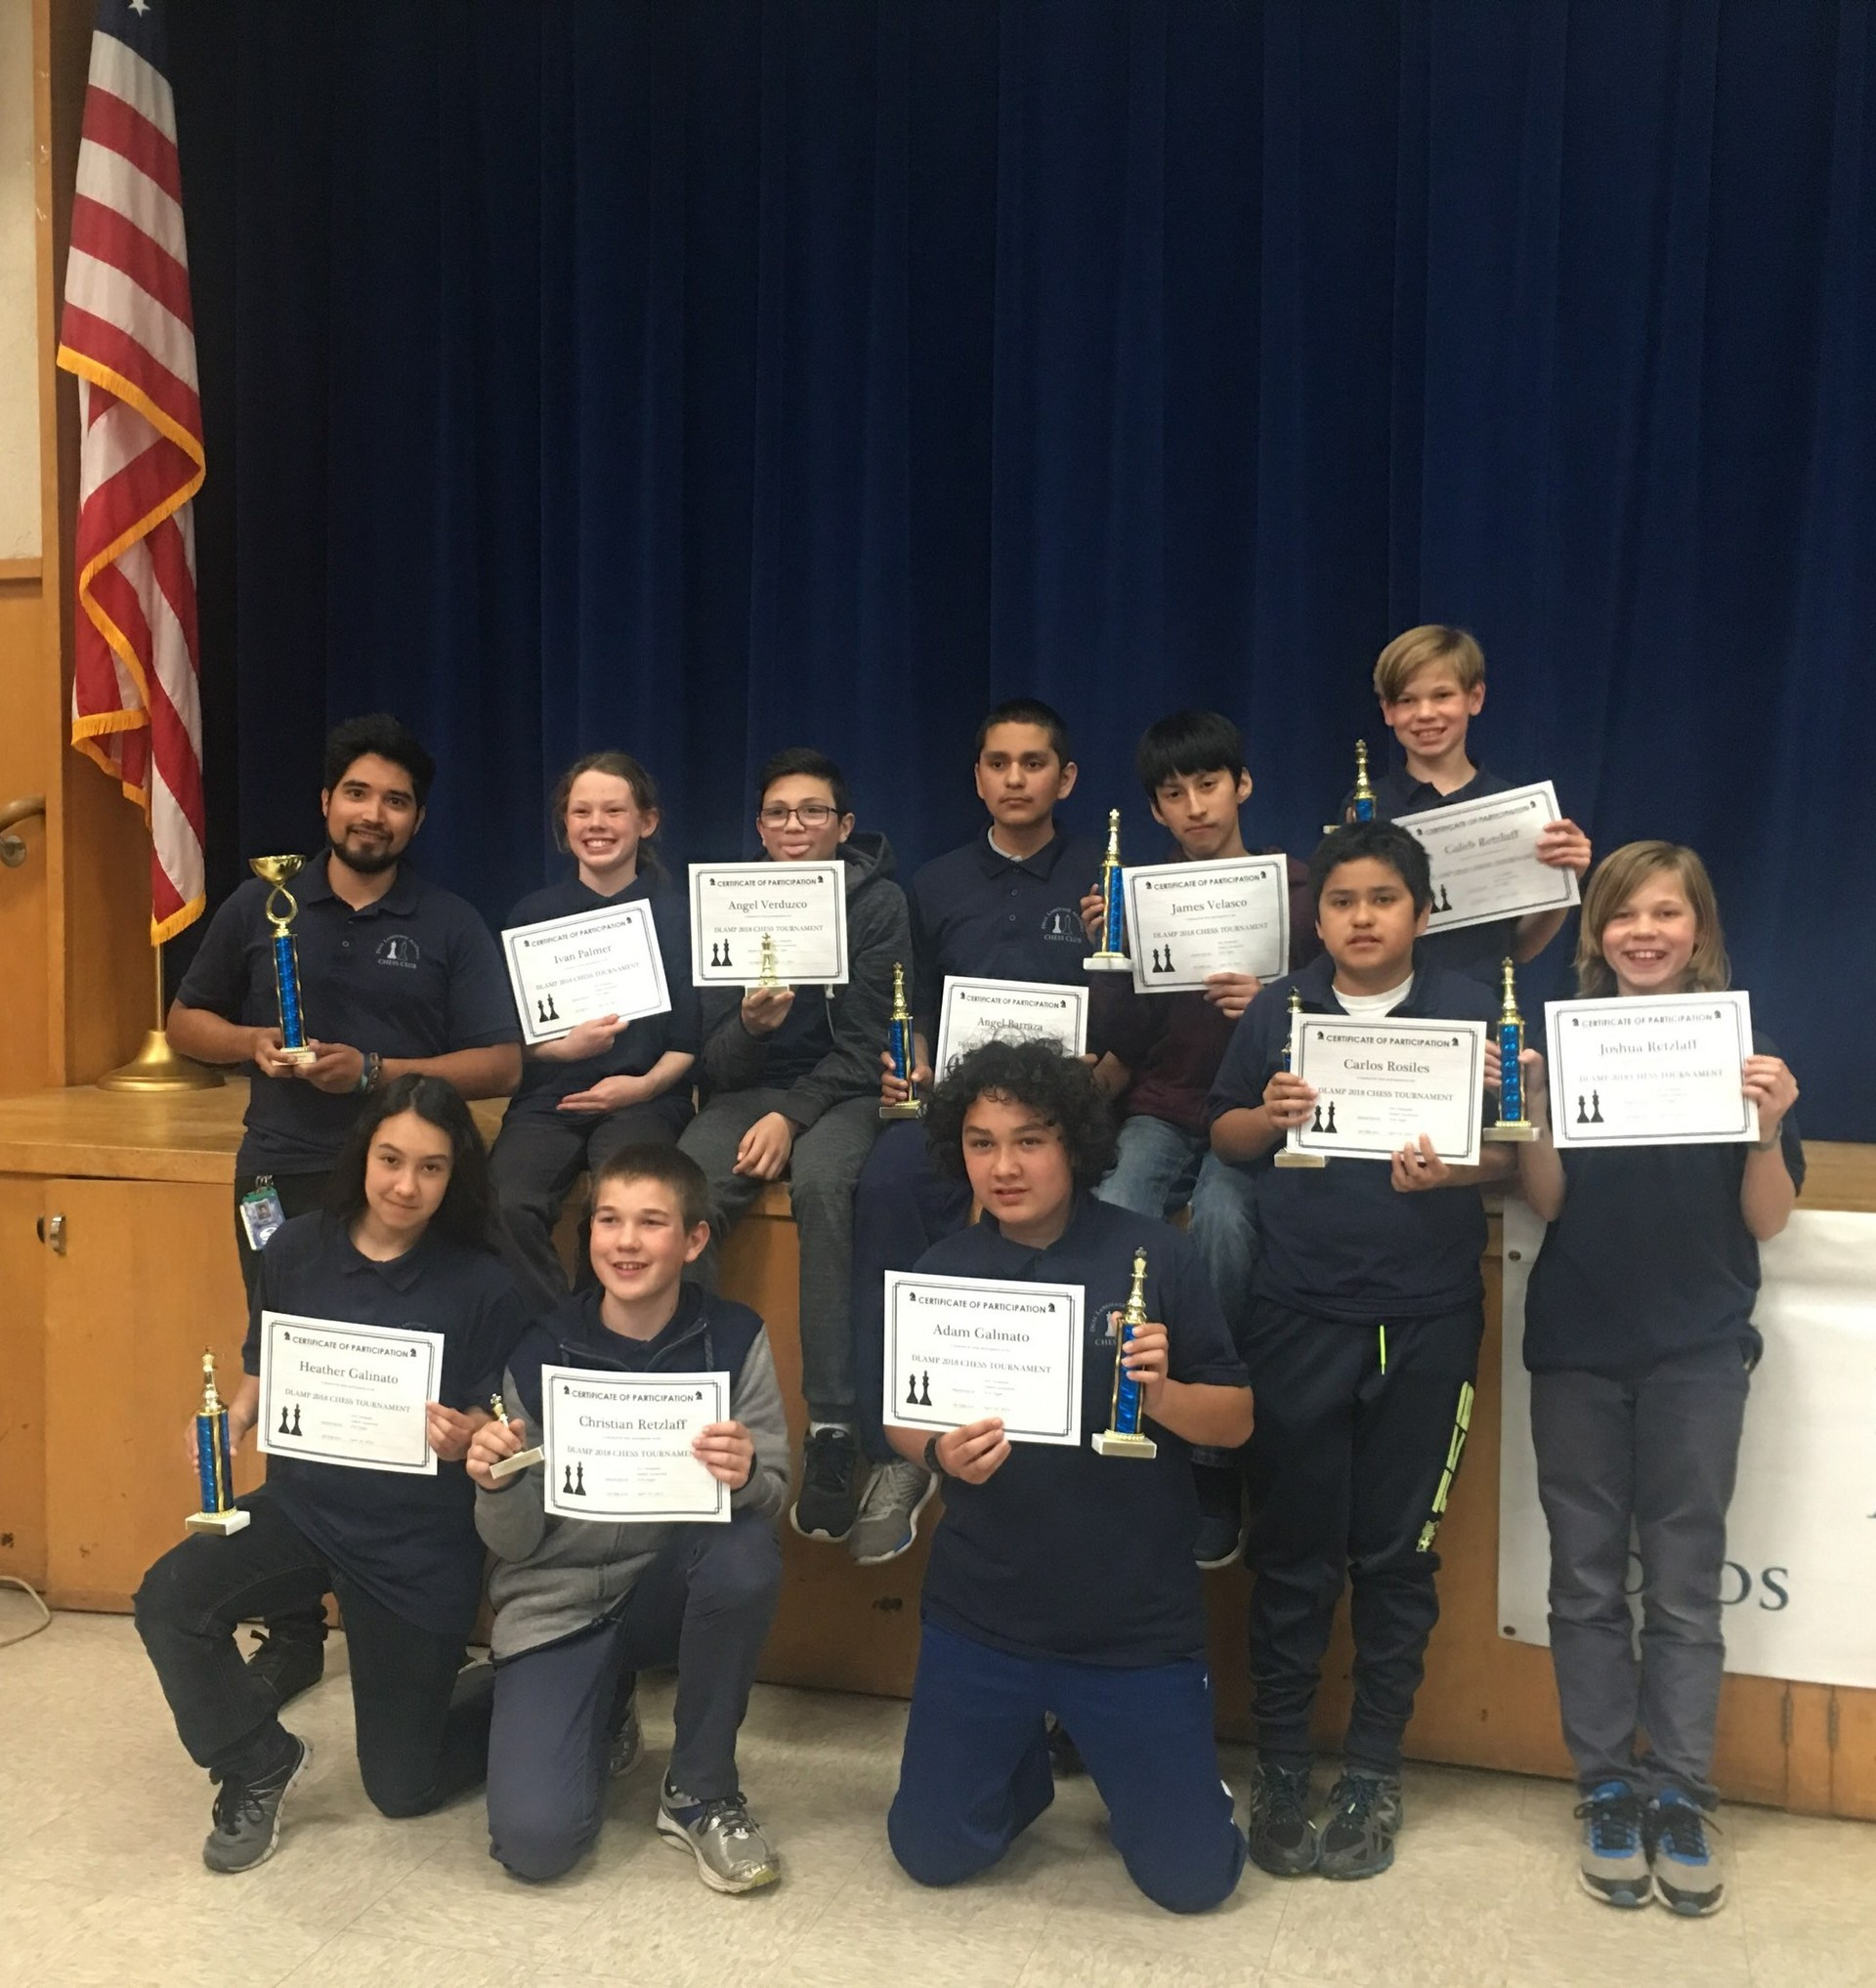 Dual Language Academy Chess Club Team Picture after their victory.